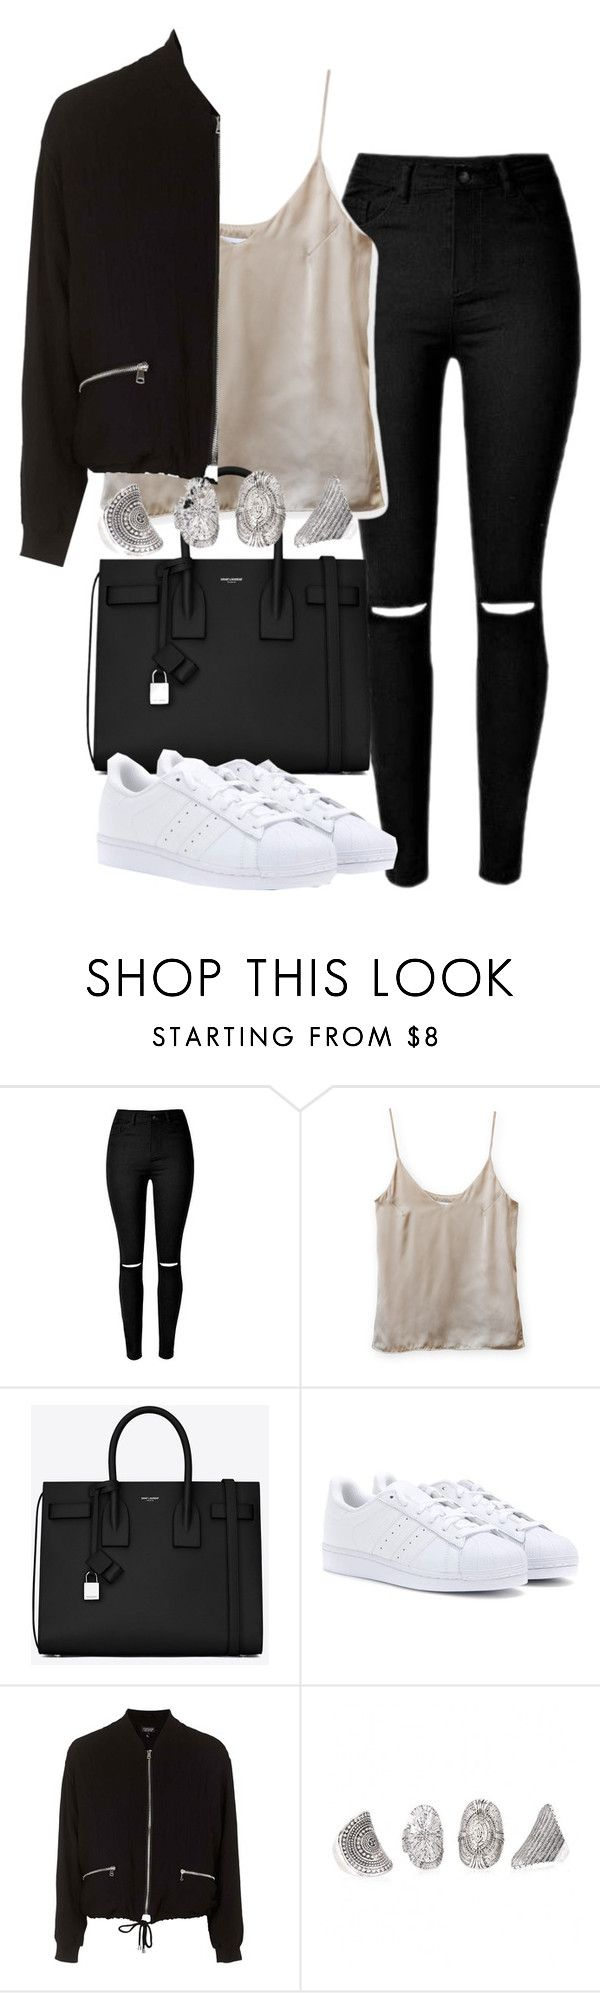 """Untitled #4212"" by maddie1128 ❤ liked on Polyvore featuring Yves Saint Laurent, adidas and Topshop"